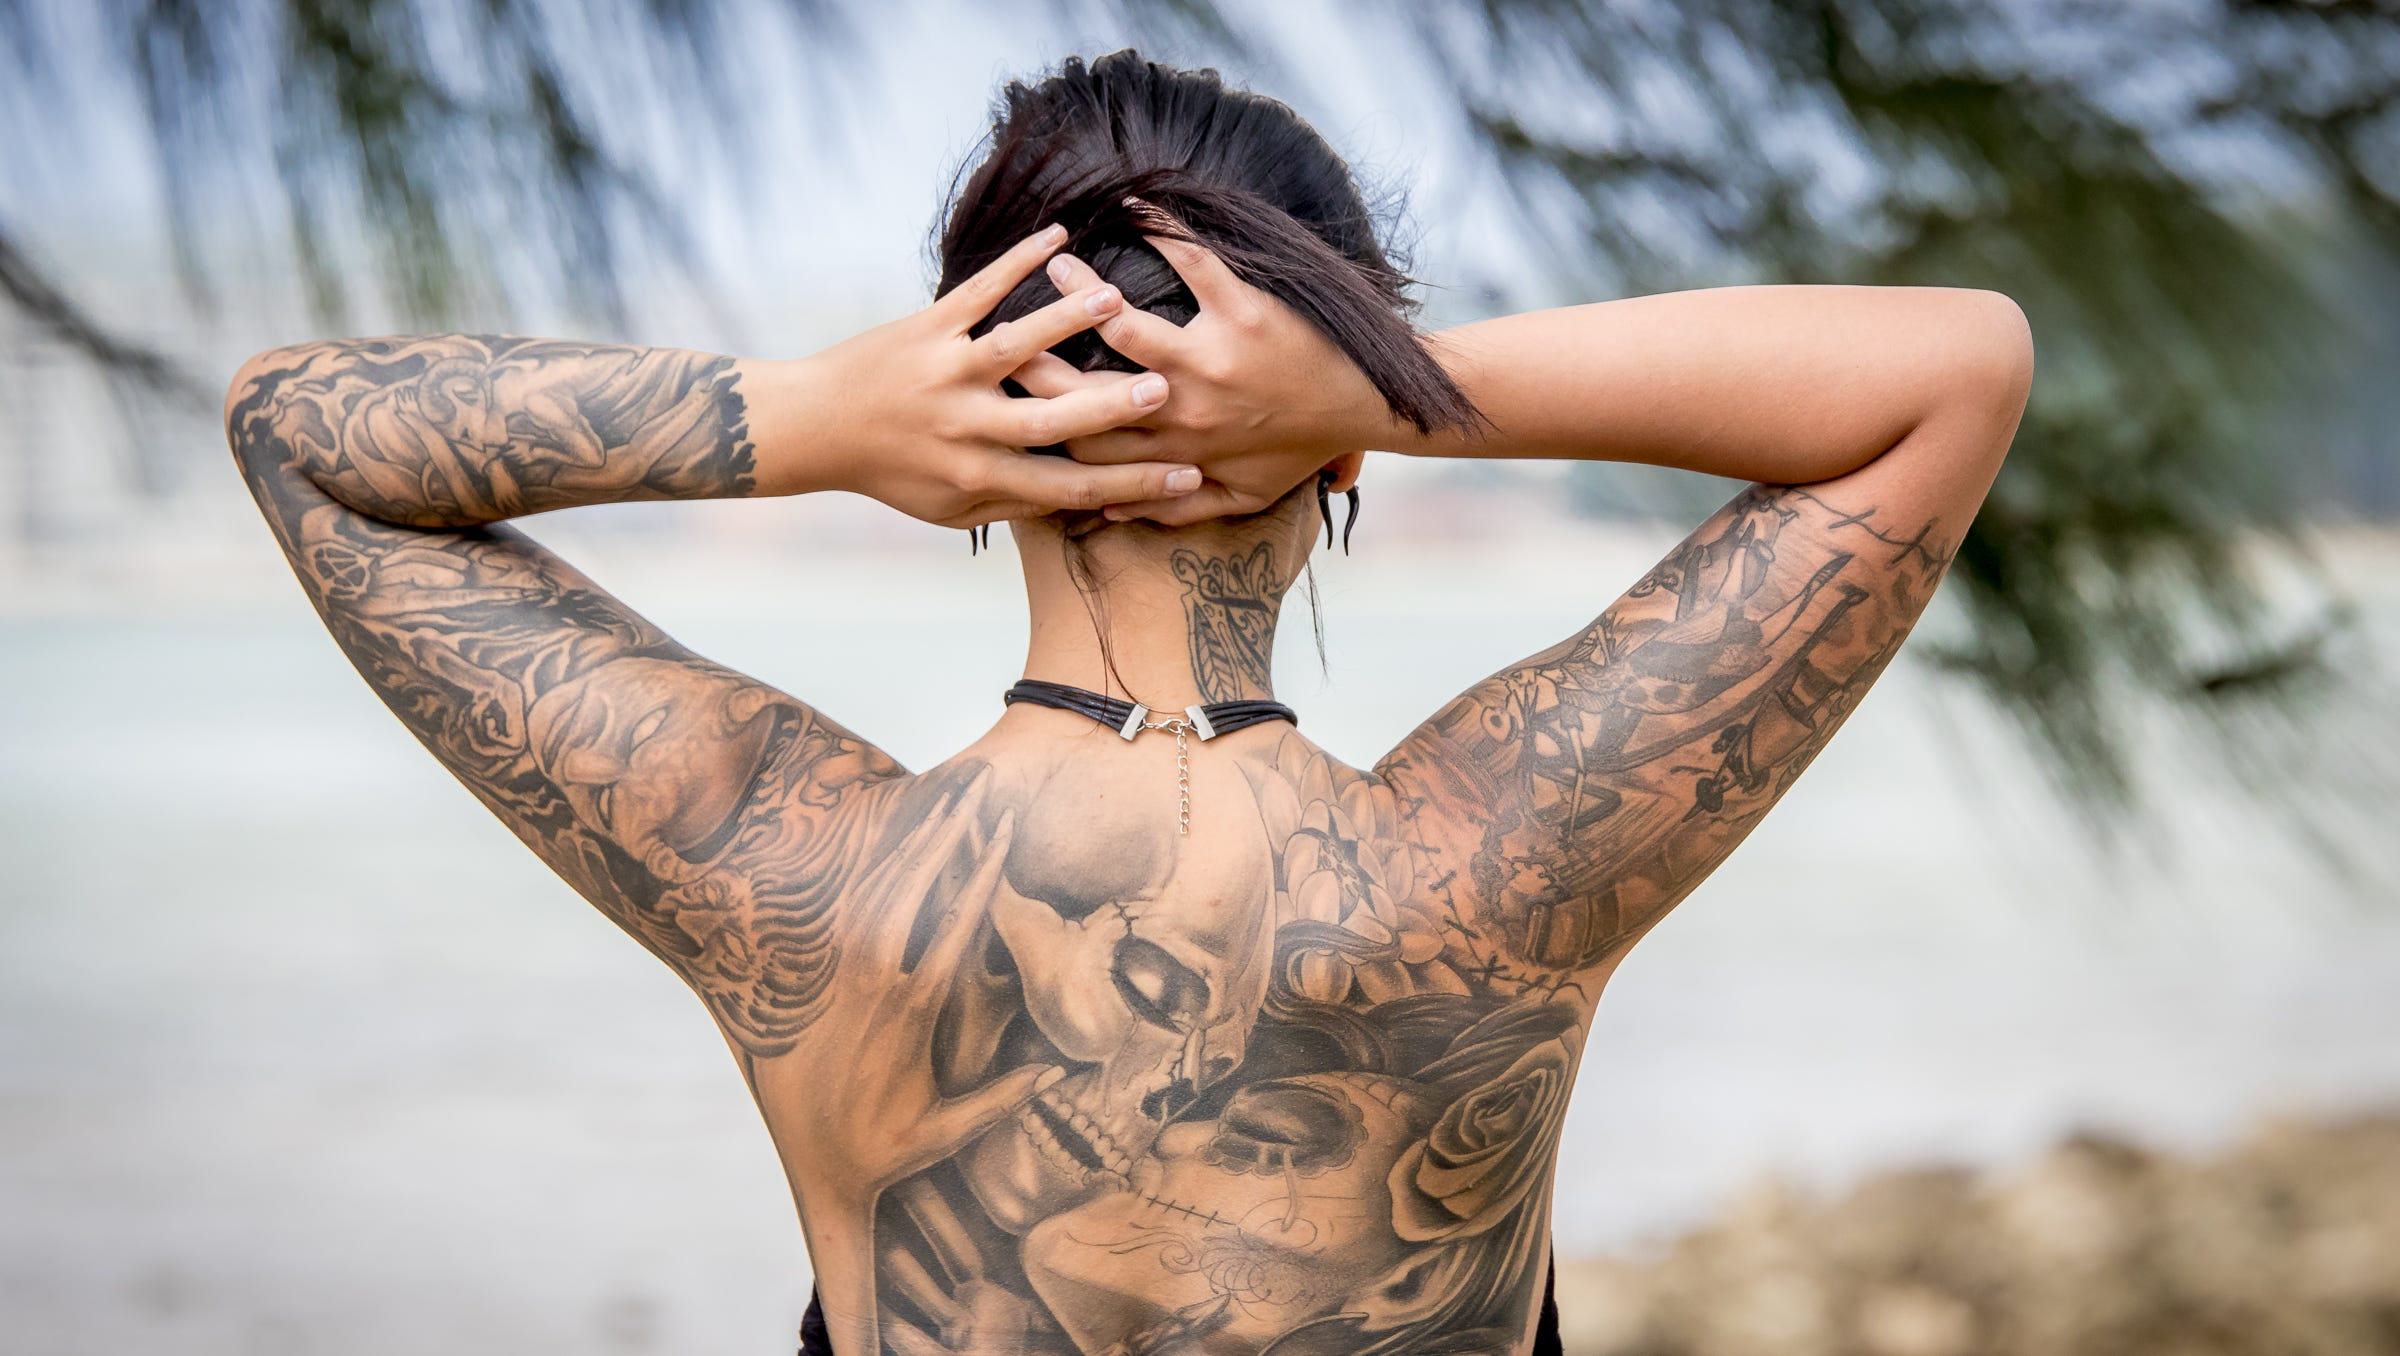 Jerrica Reyes Shows Her Love In Her Tattoo Collection